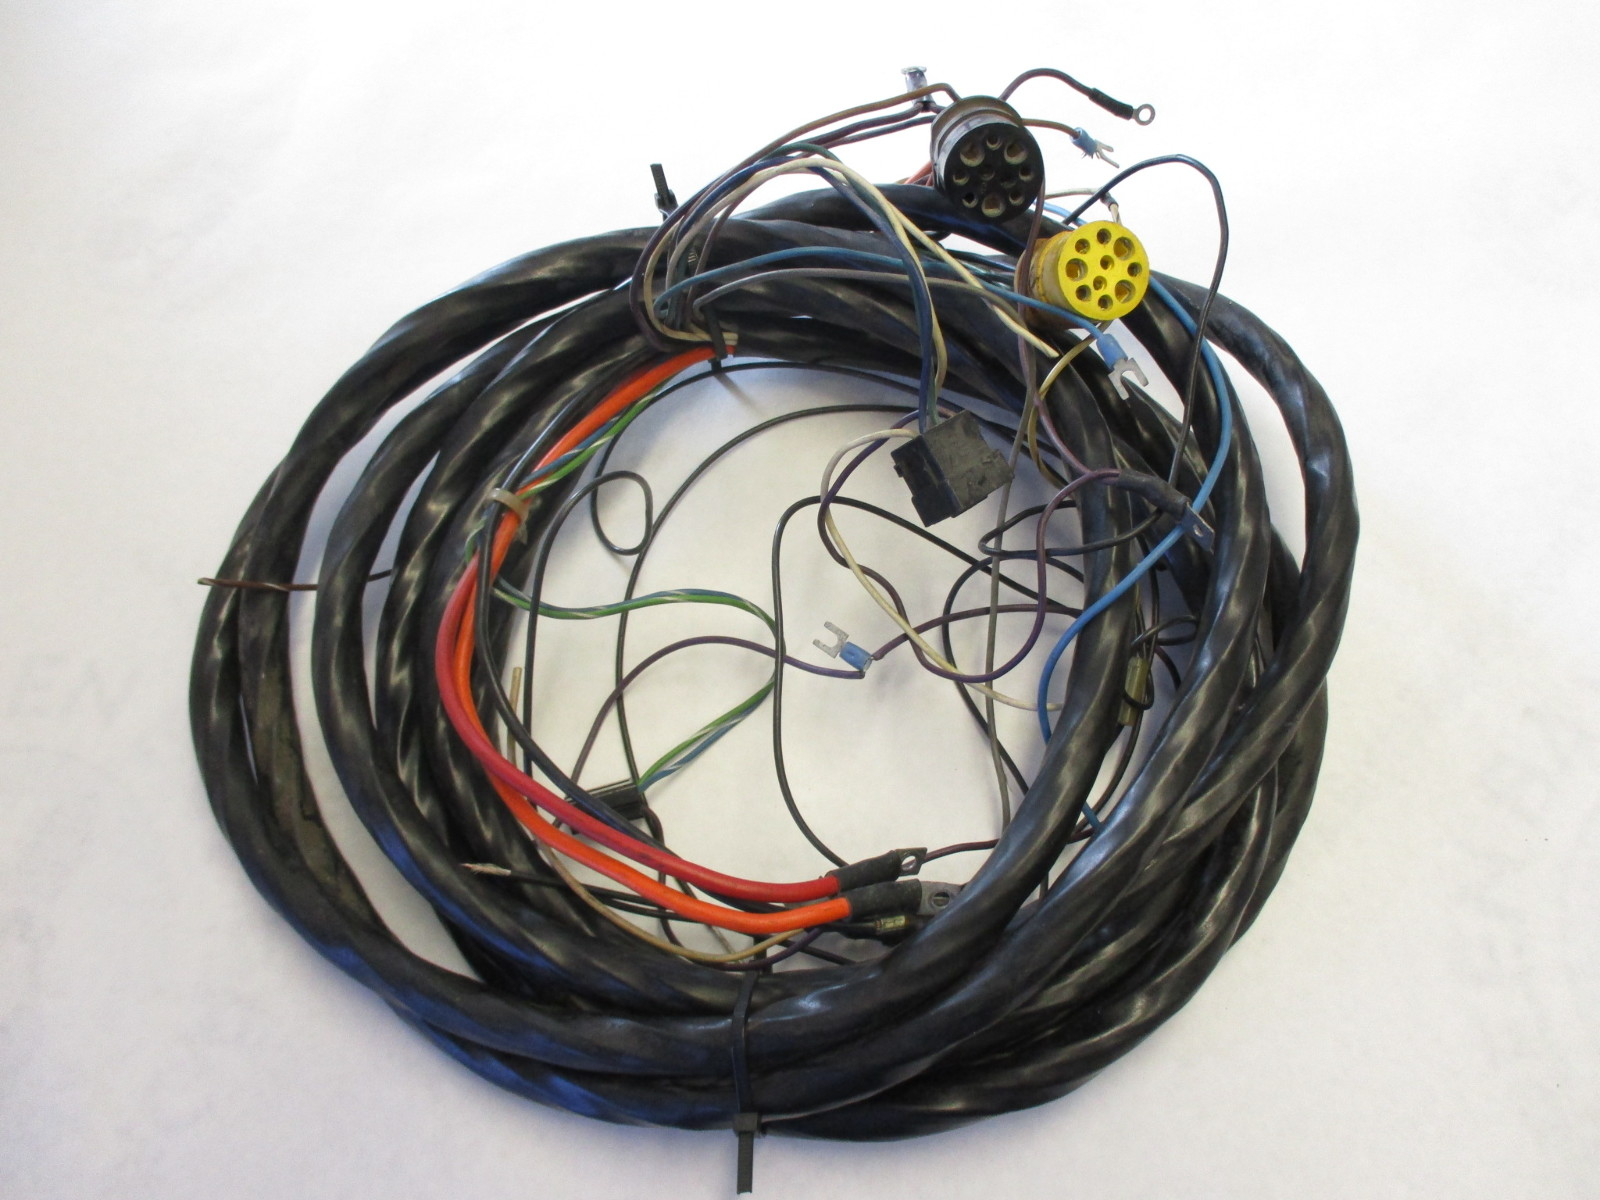 wiring avh stereo car harness pioneer 270bt pioneer car